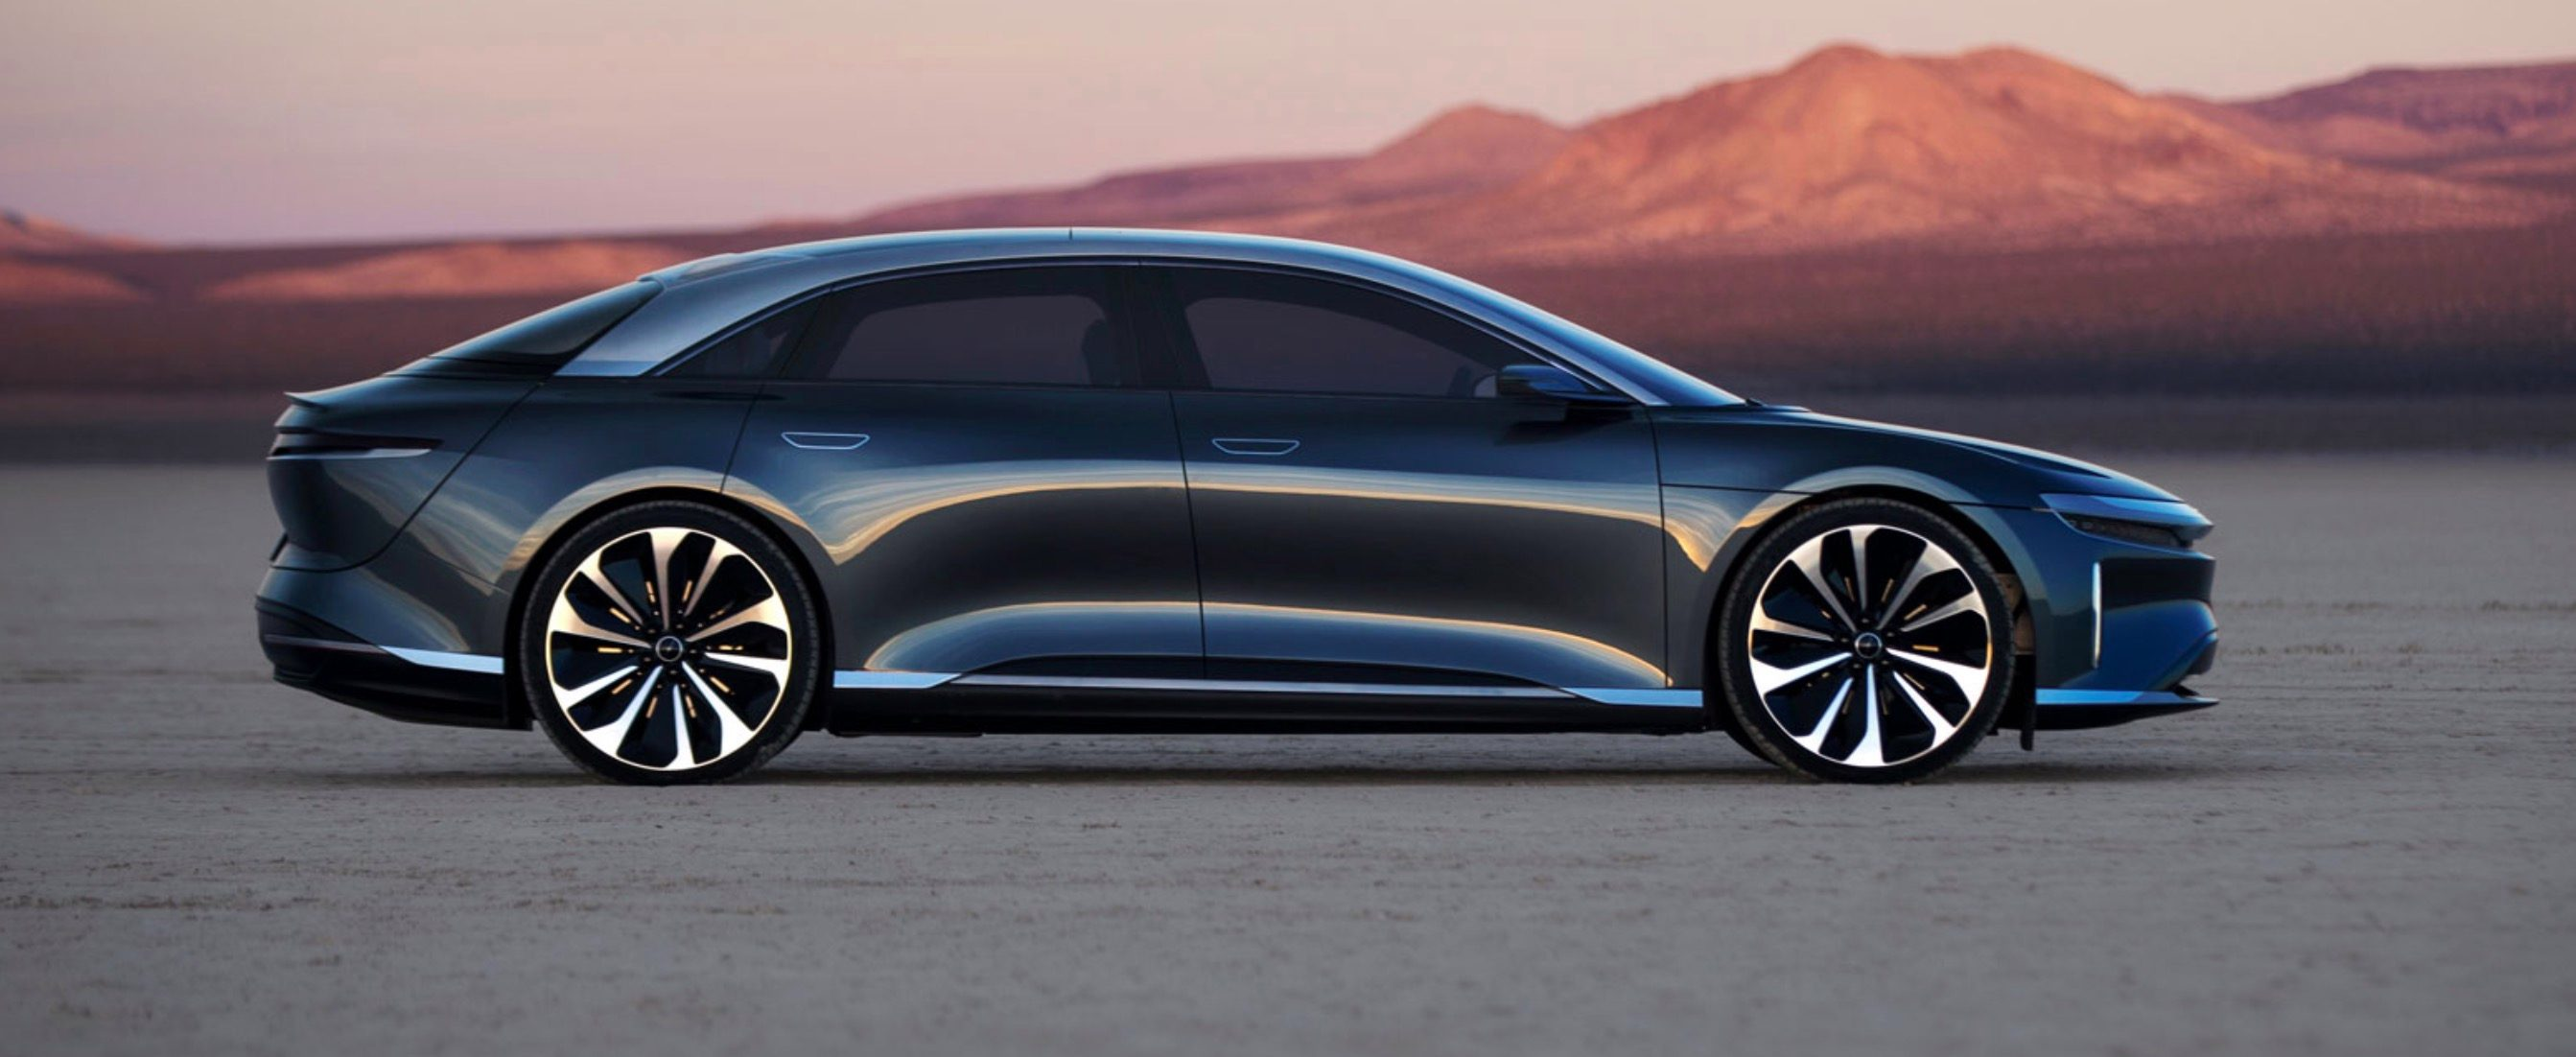 Luxury EV brand Lucid claims 20 minutes charge for 300 miles